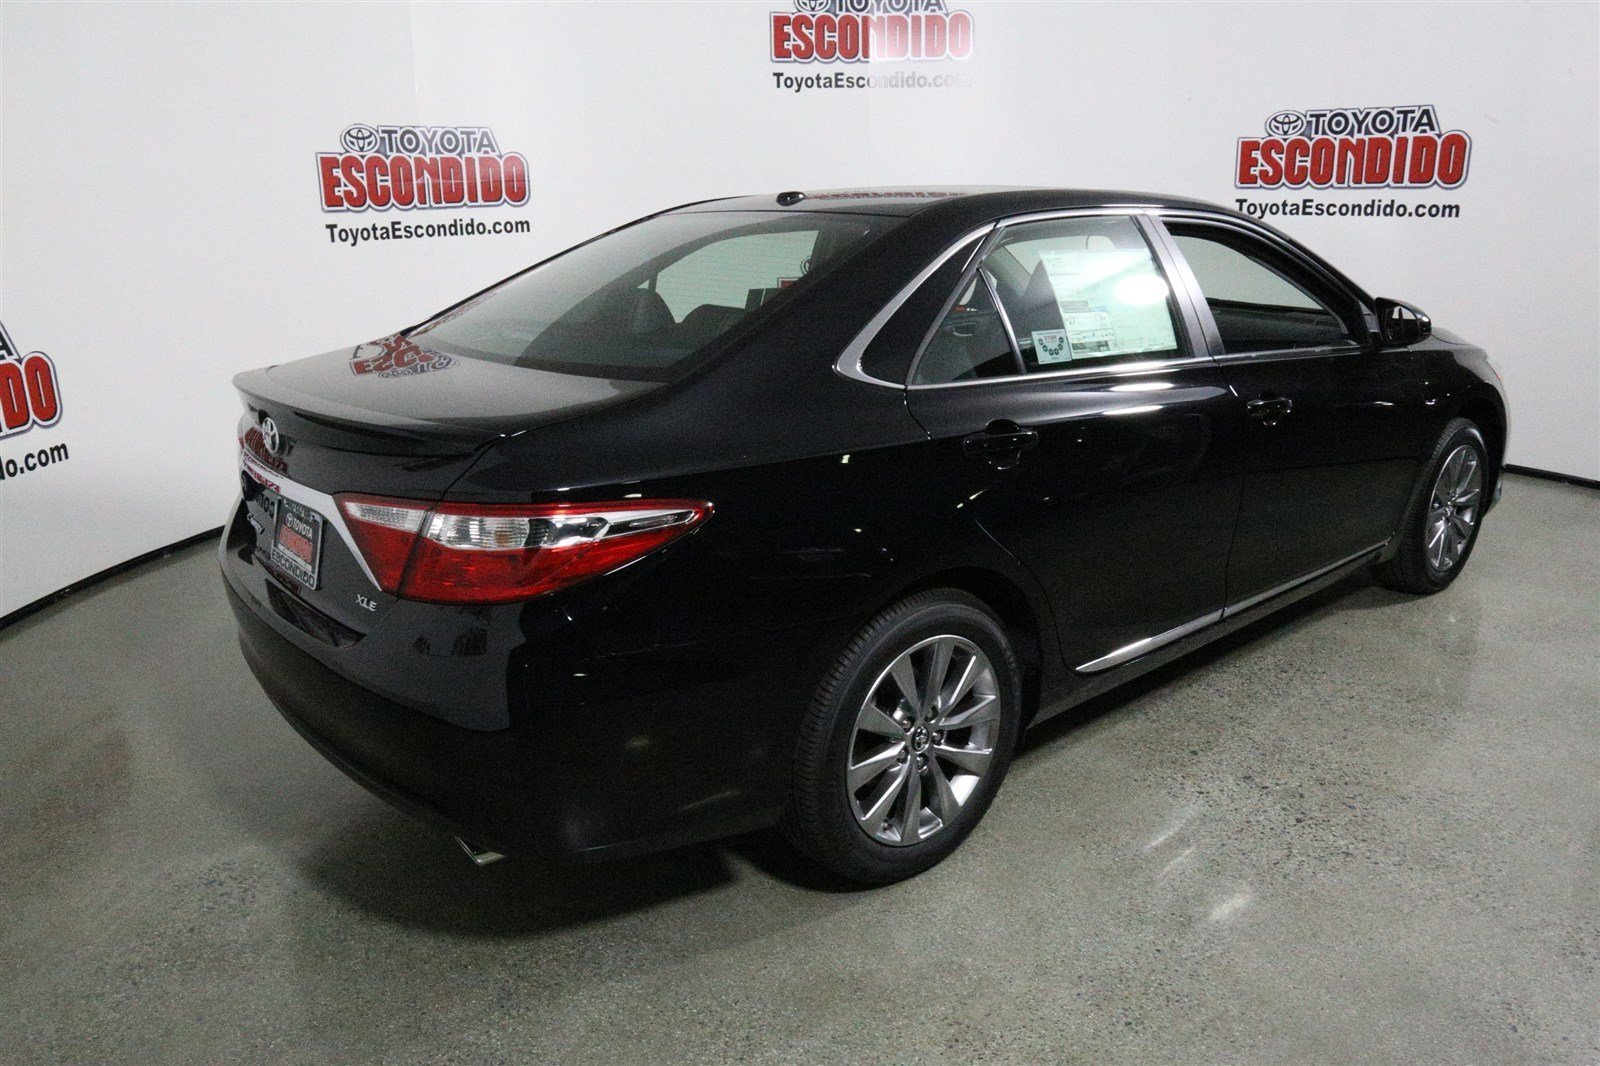 brand new camry price all toyota 2019 philippines 2017 xle 4dr car in escondido hu338986